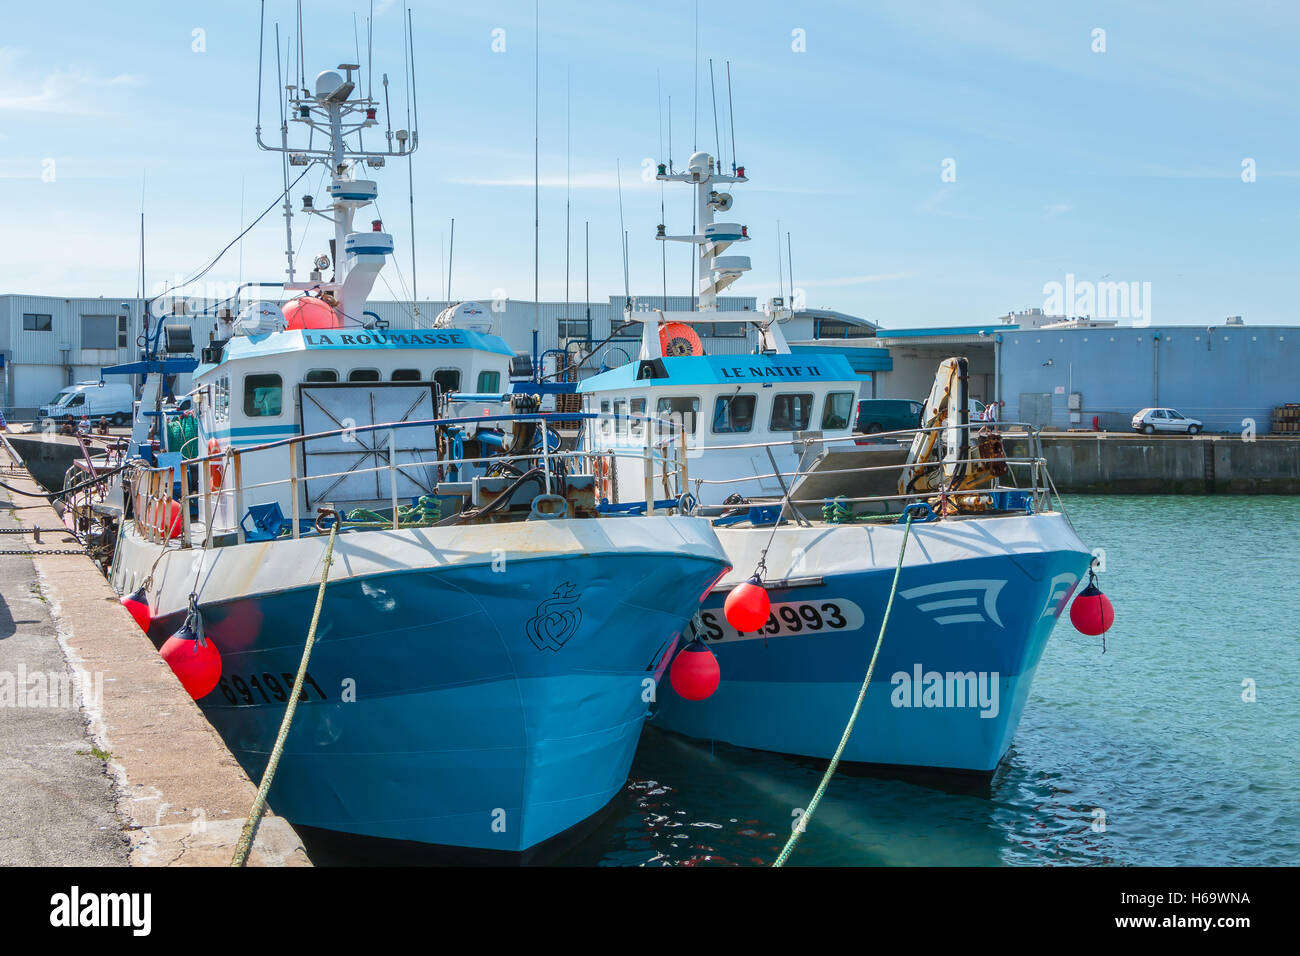 Saint Gilles Croix de Vie, France - July 27, 2016 : trawlers are returned to port after fishing off - Stock Image